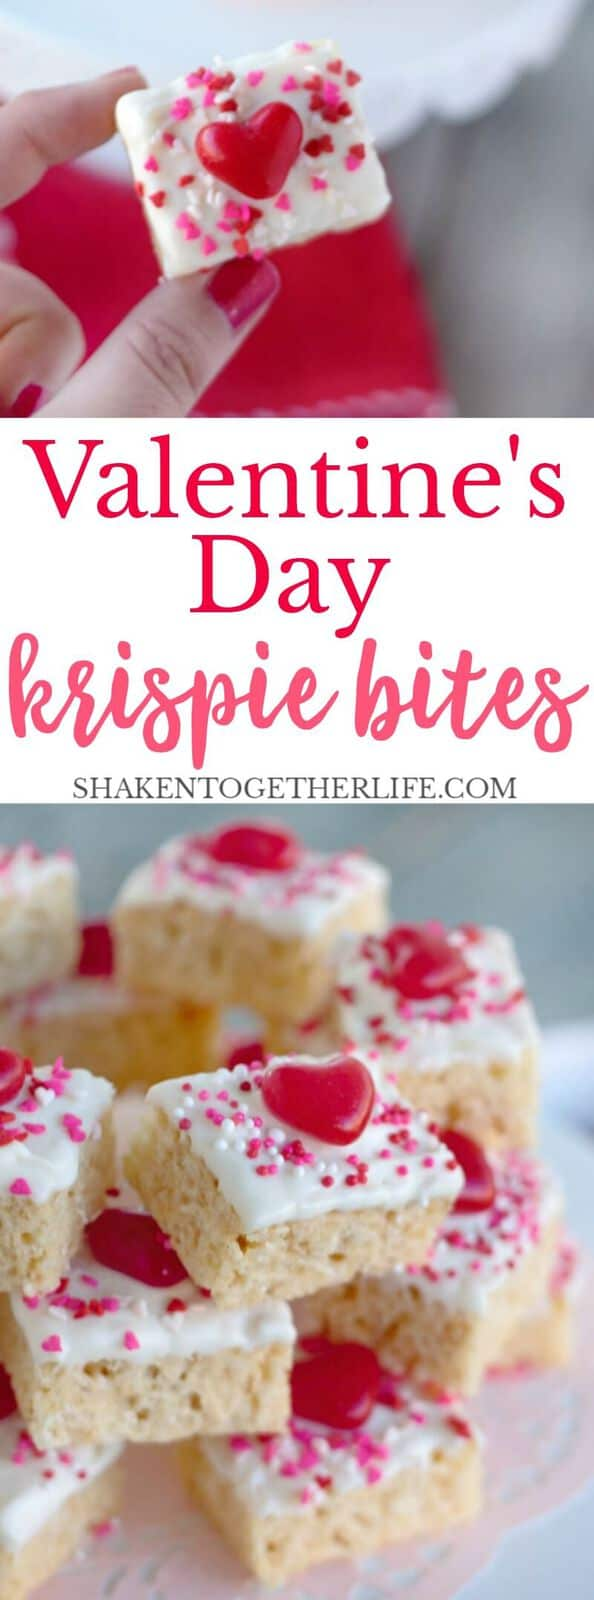 Dipped in white chocolate and topped with festive cinnamon hearts and sprinkles, Valentine's Day Krispie Bites are the easiest no bake Valentine's Day dessert!